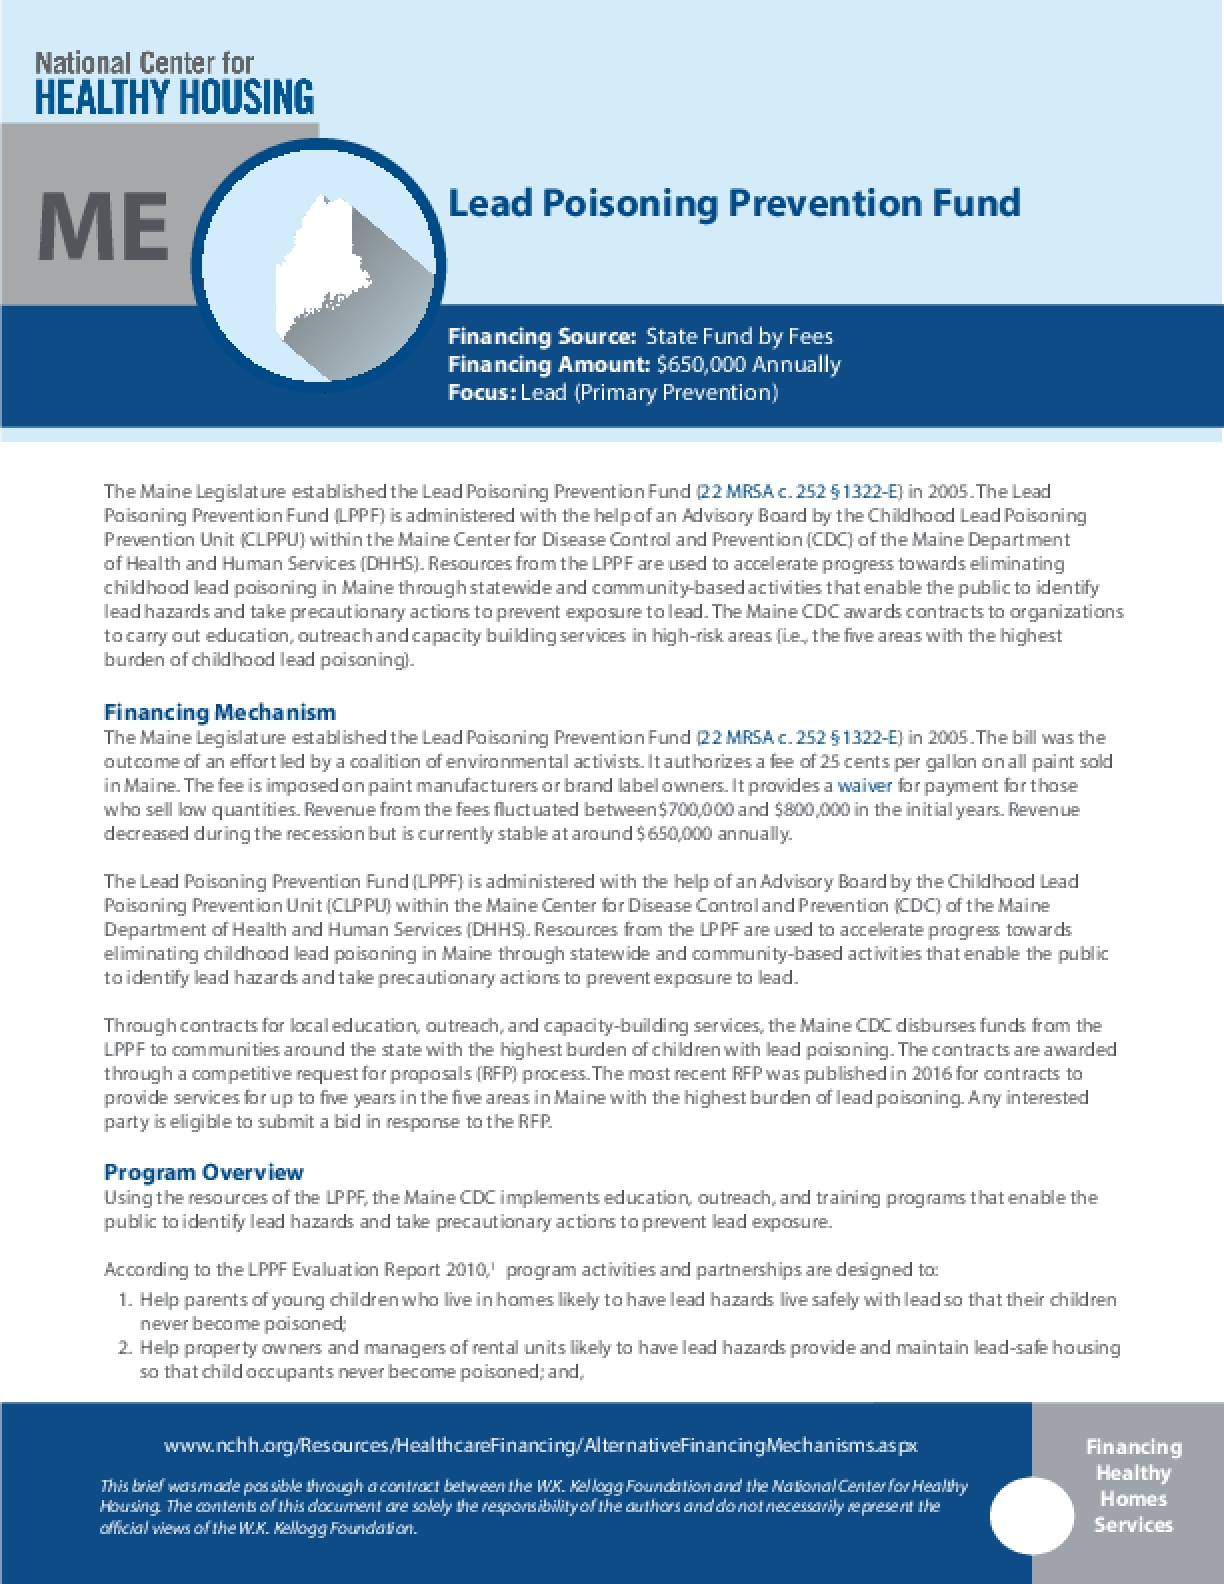 Lead Poisoning Prevention Fund